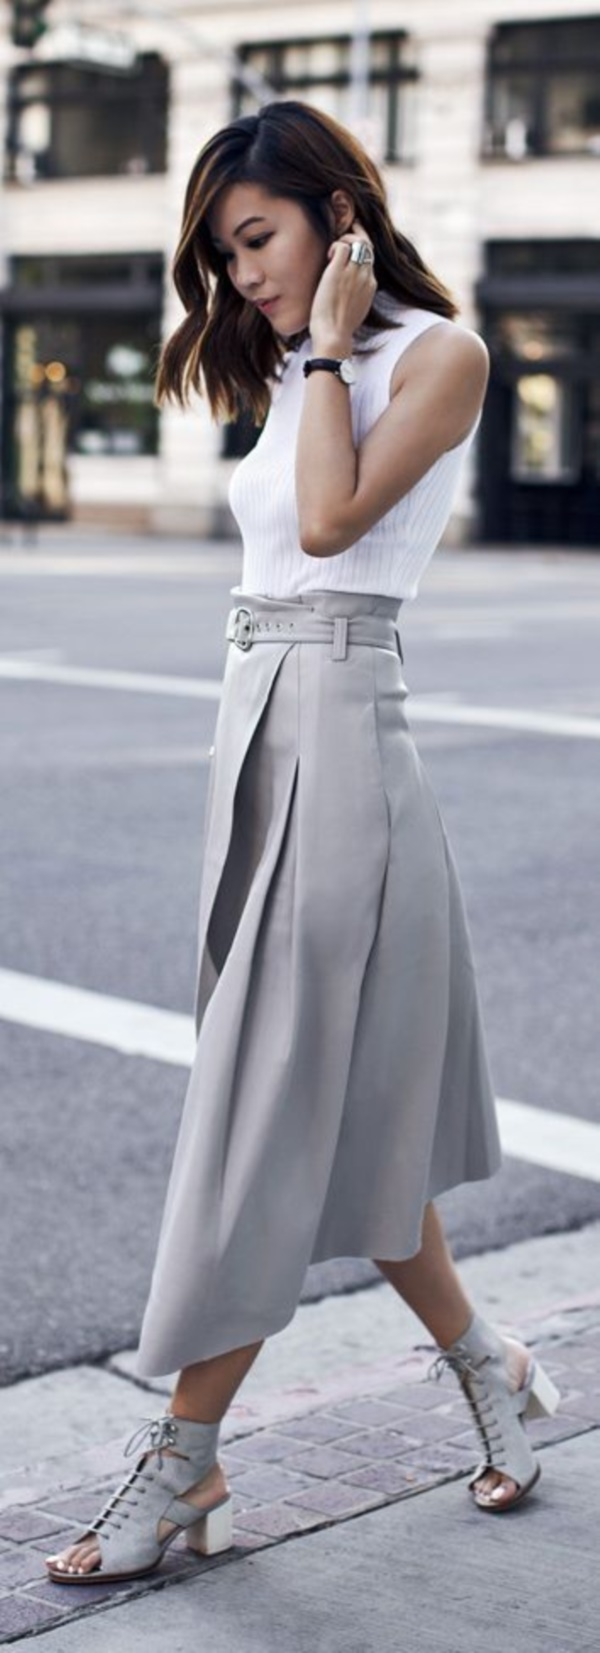 grey skirt outfit (68)